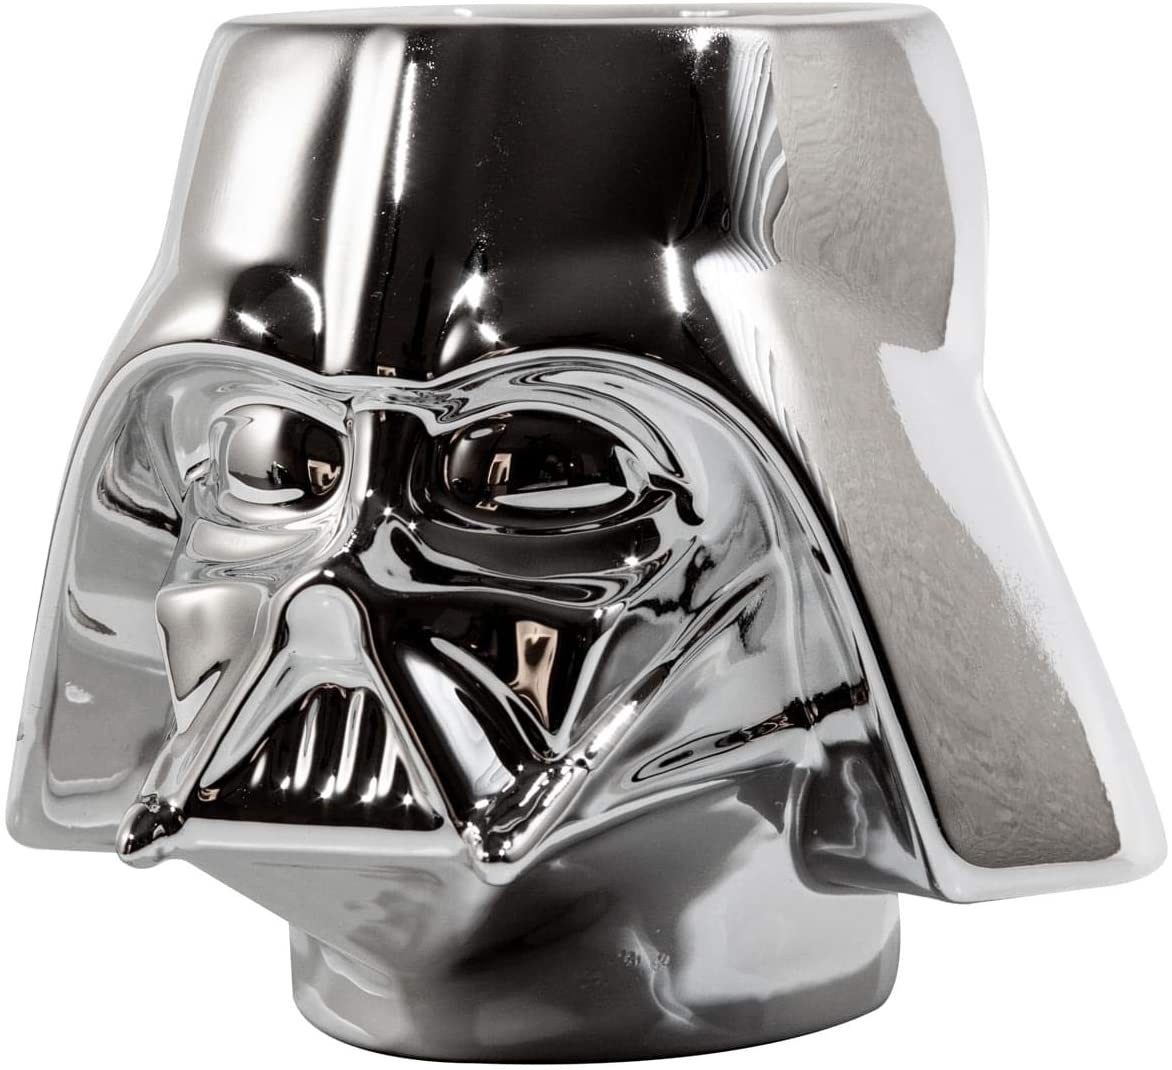 Star Wars Collectible | Star Wars Darth Vader Mug | Chrome Molded Mug